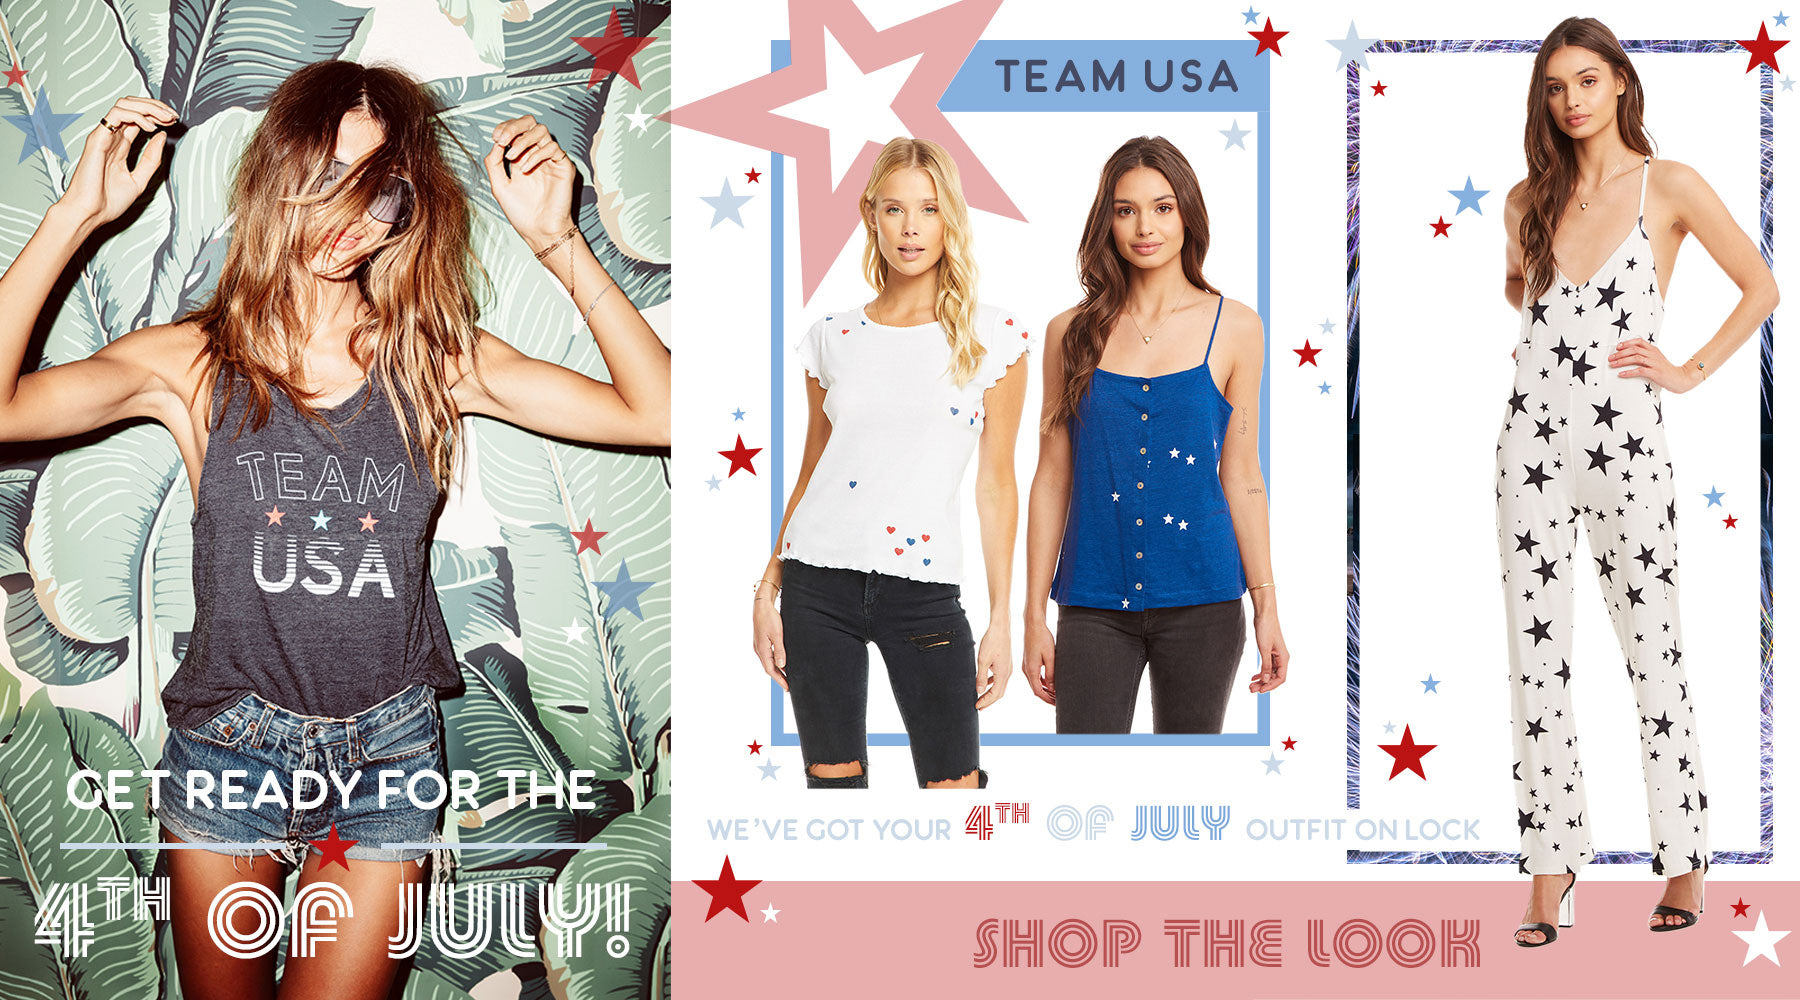 Team USA! We've got your 4th of July outfit on lock at Chaser